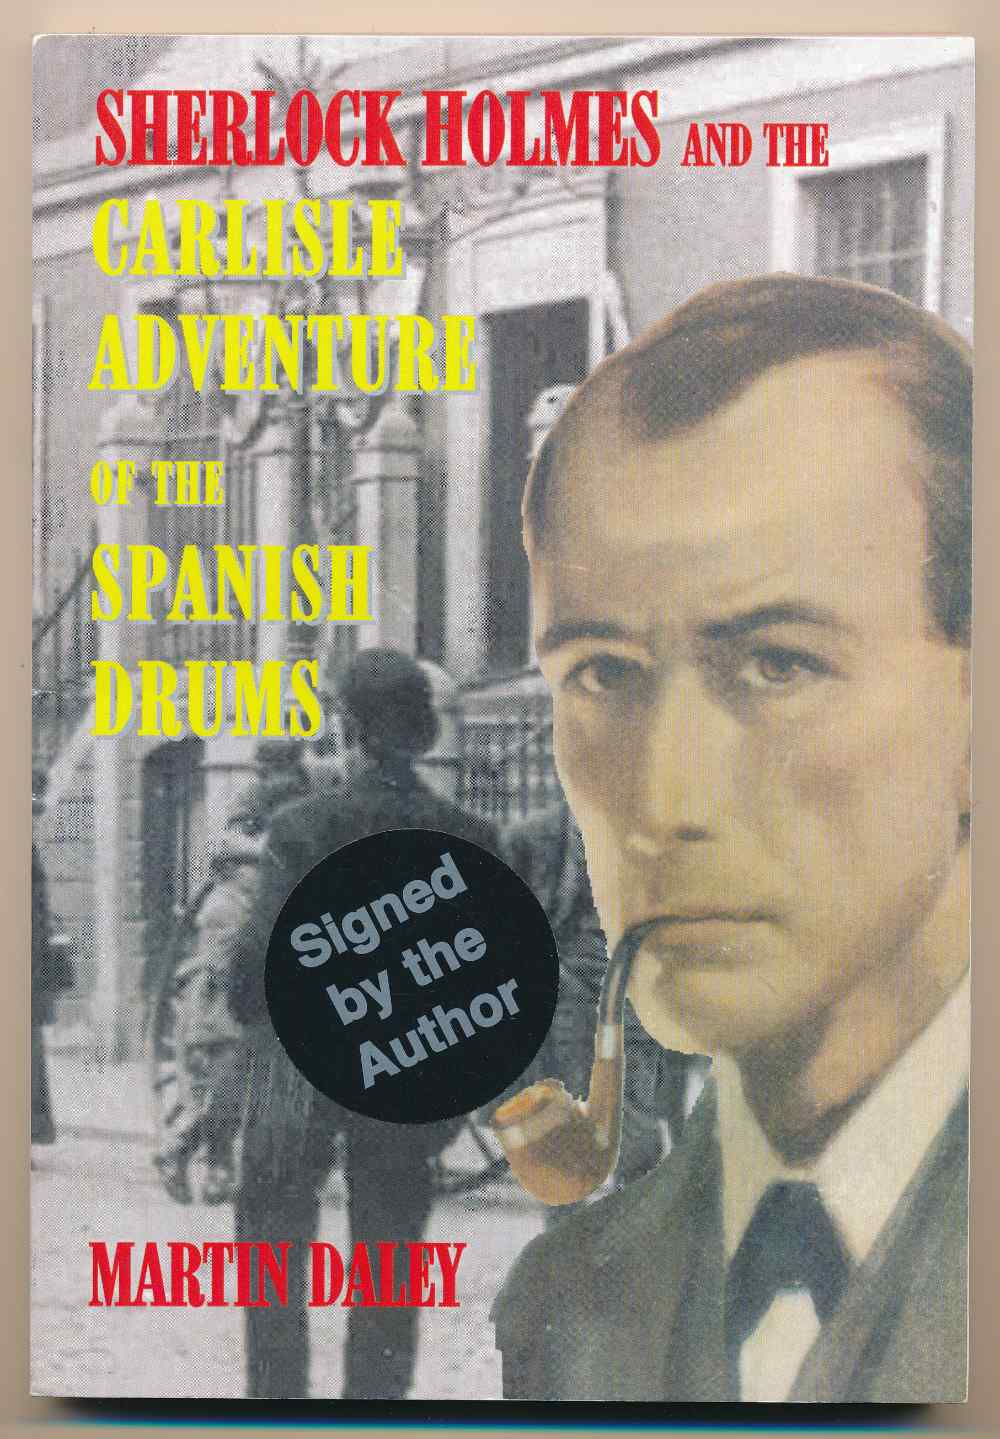 The Carlisle adventure of the Spanish drums : another tale of Sherlock Holmes